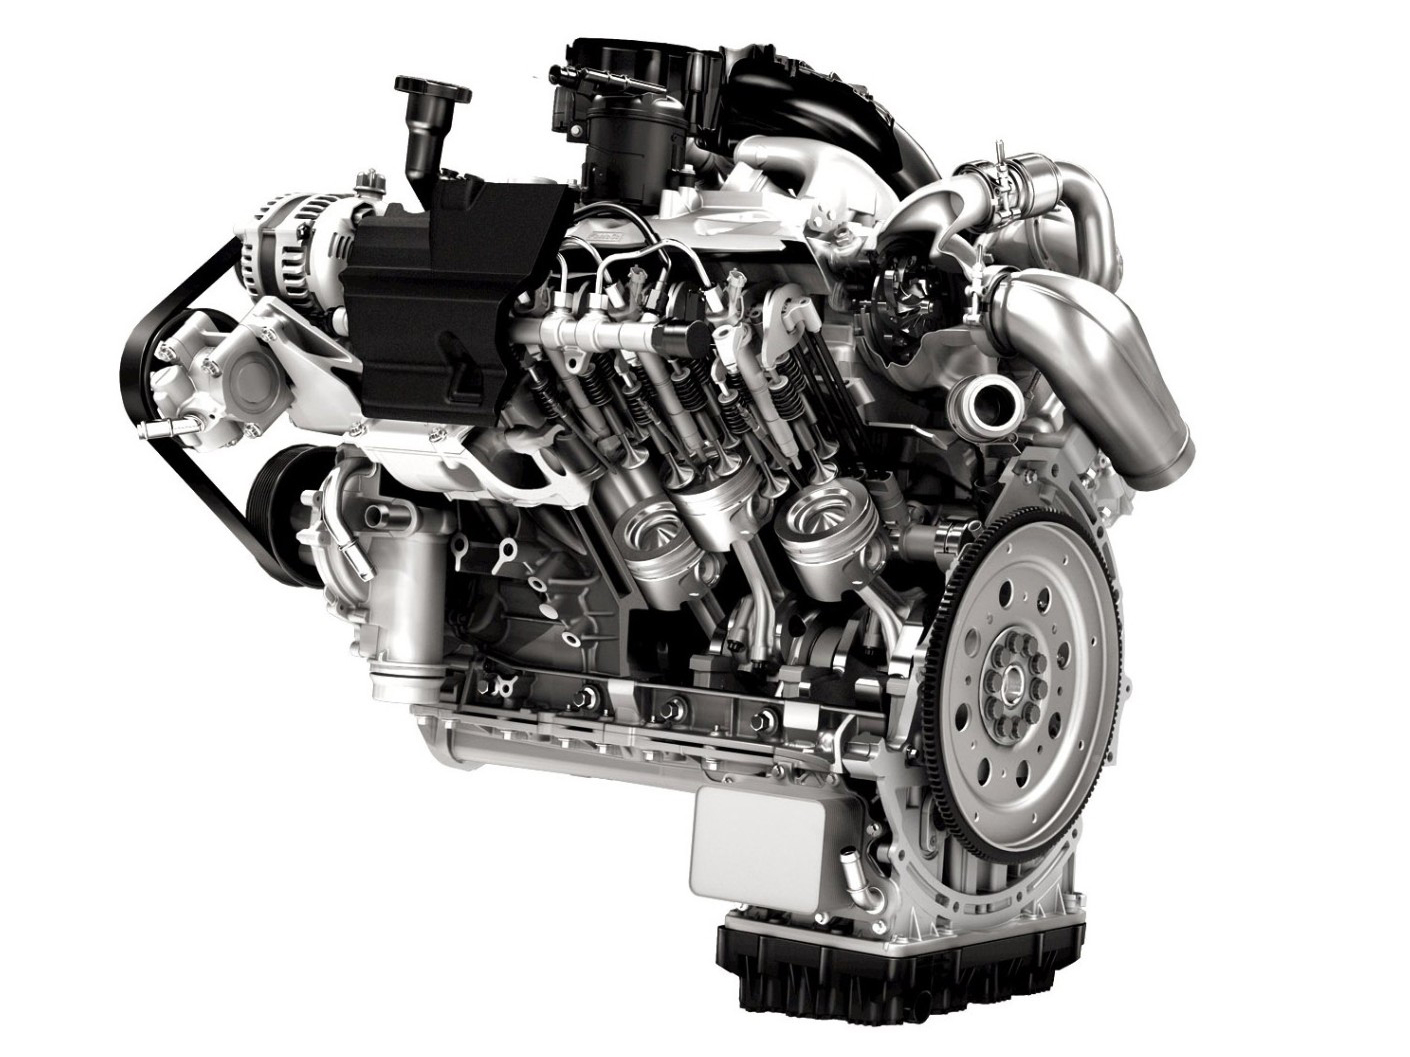 An Inside Look At The 6.7 Power Stroke